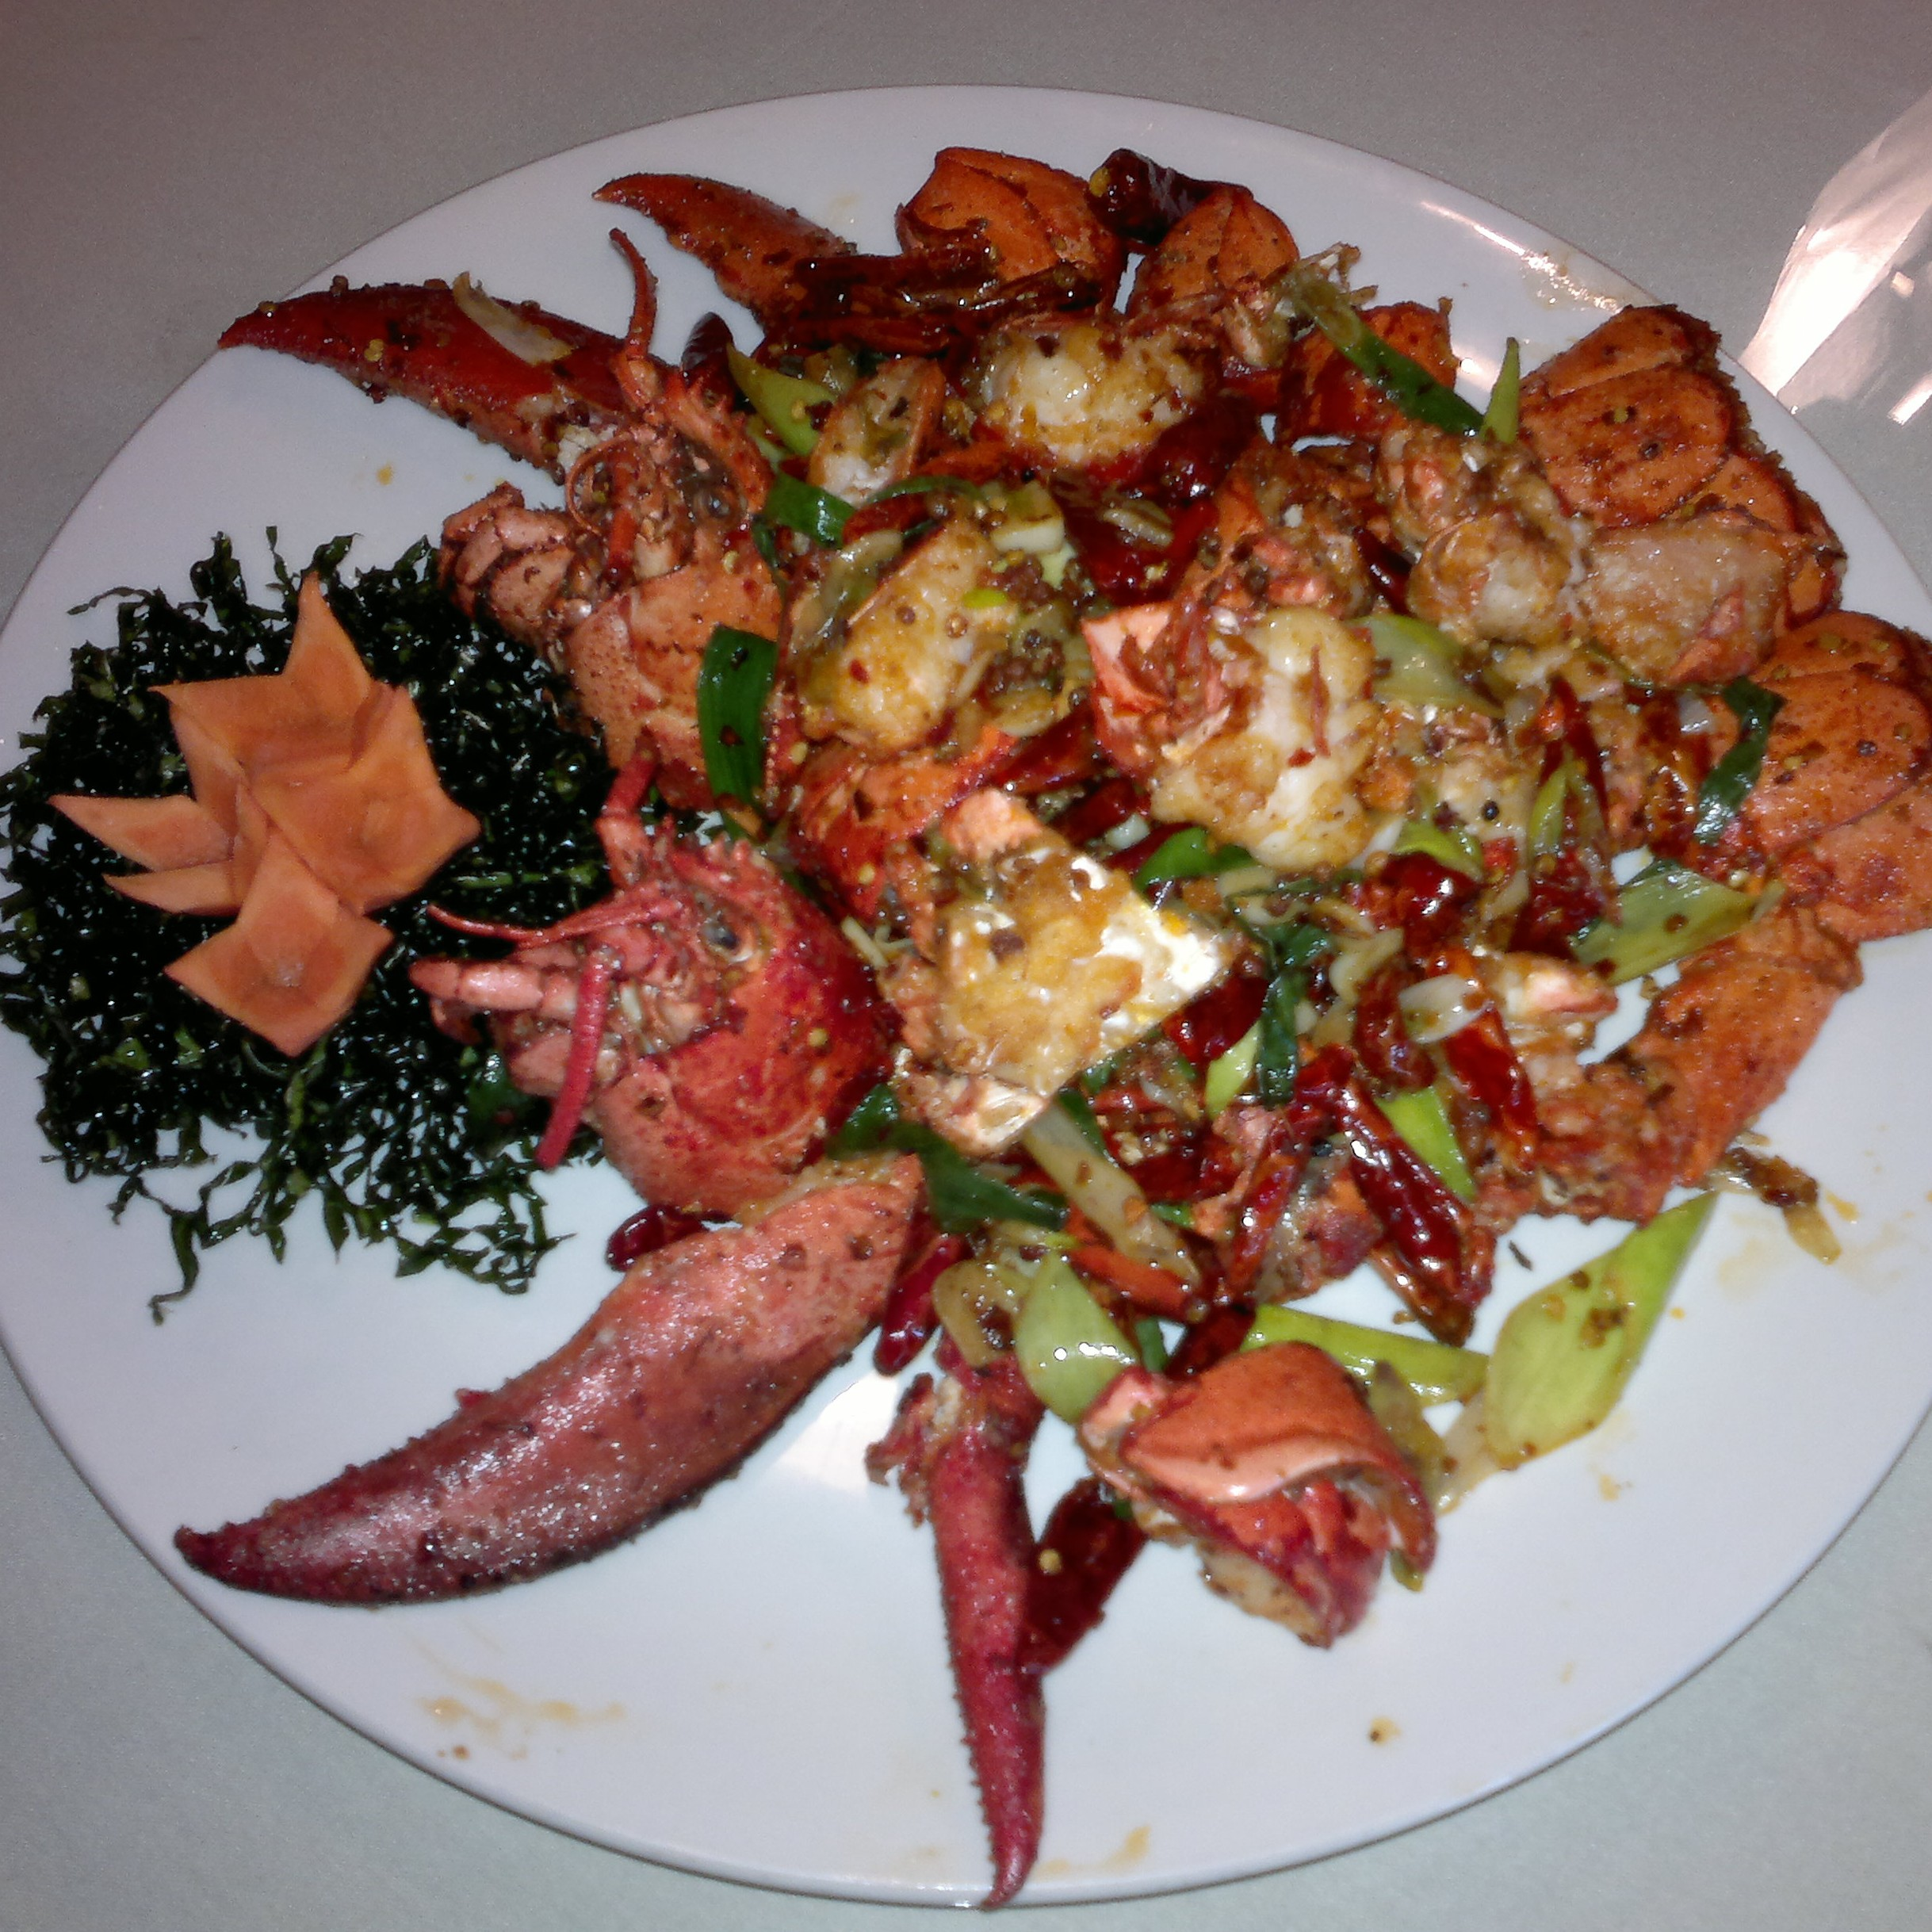 Live Lobster in Spicy Salt